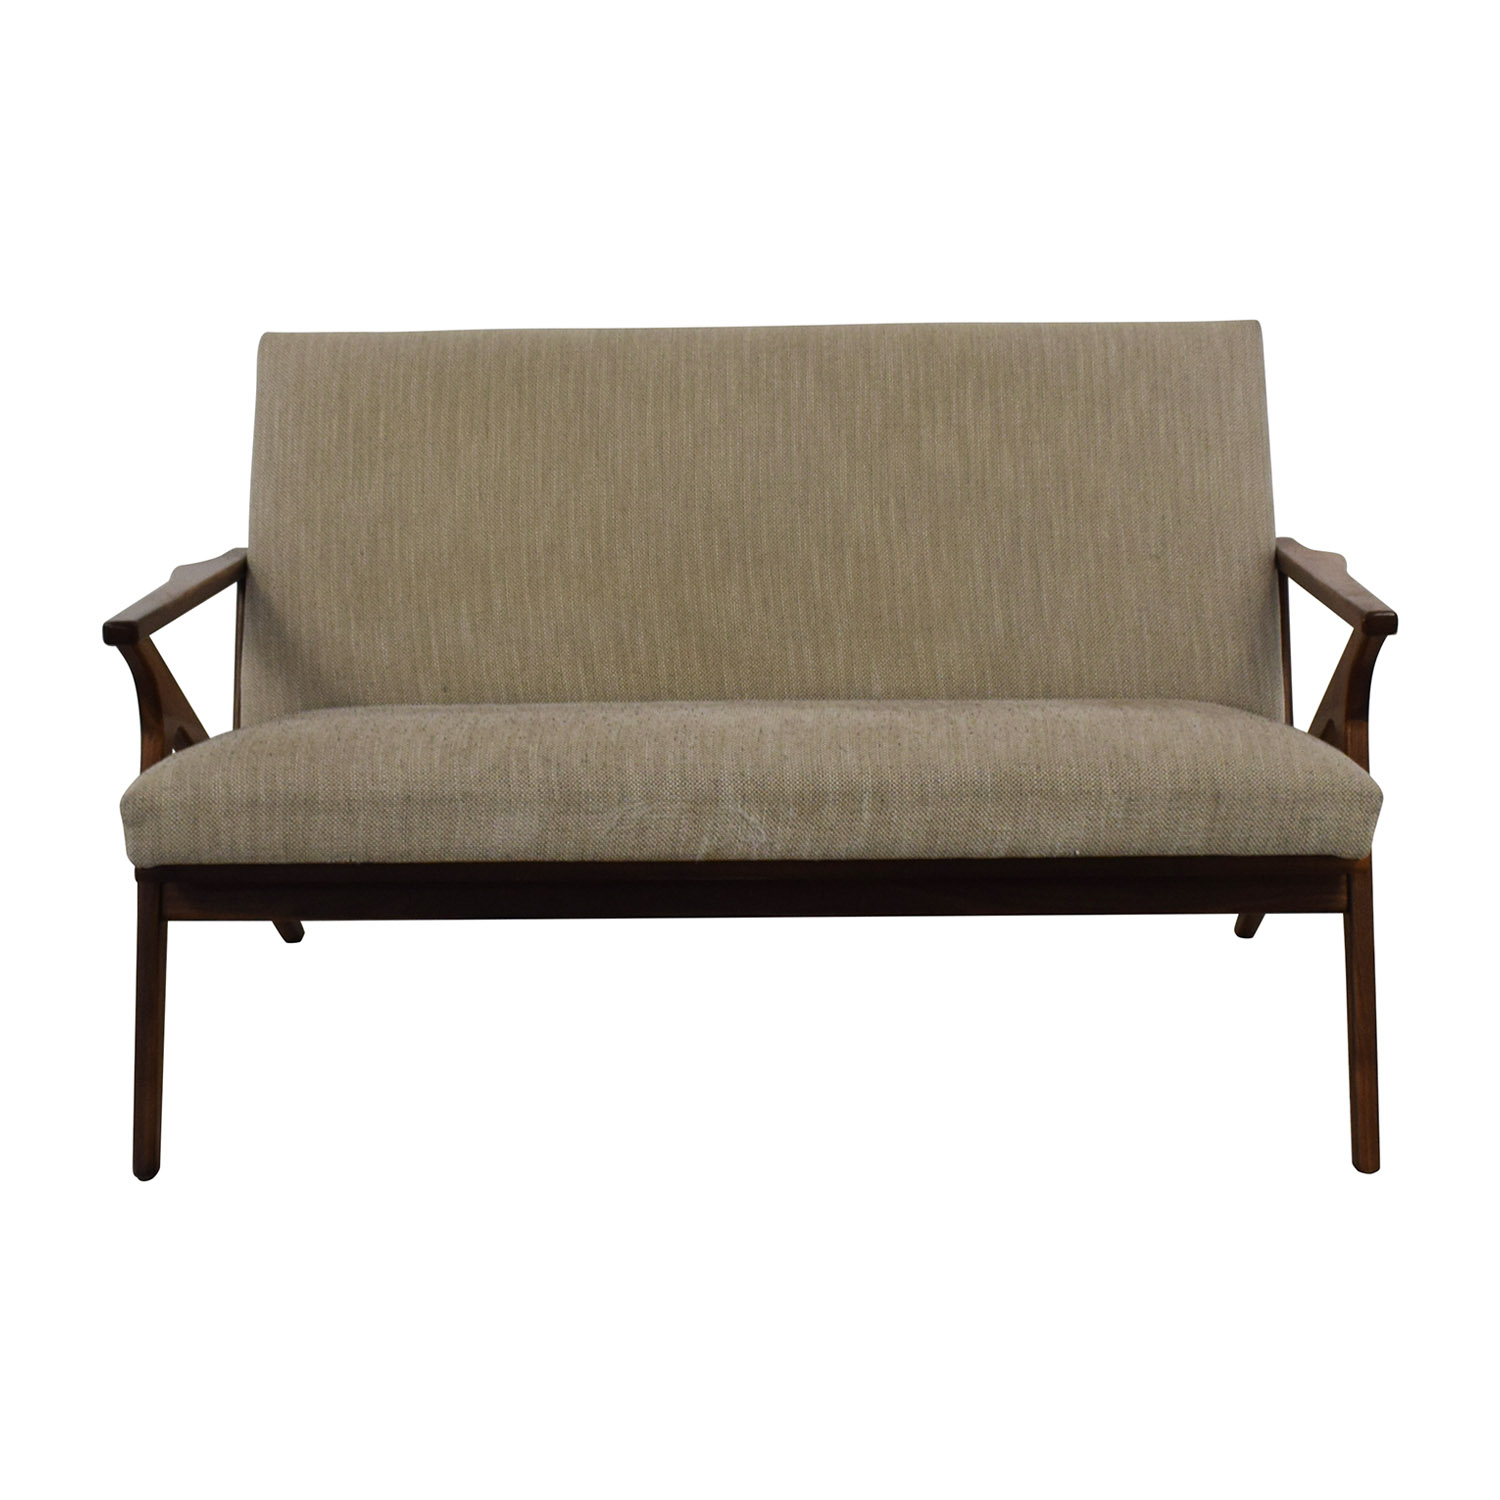 Crate & Barrel Crate & Barrel Cavett Wood Frame Loveseat used